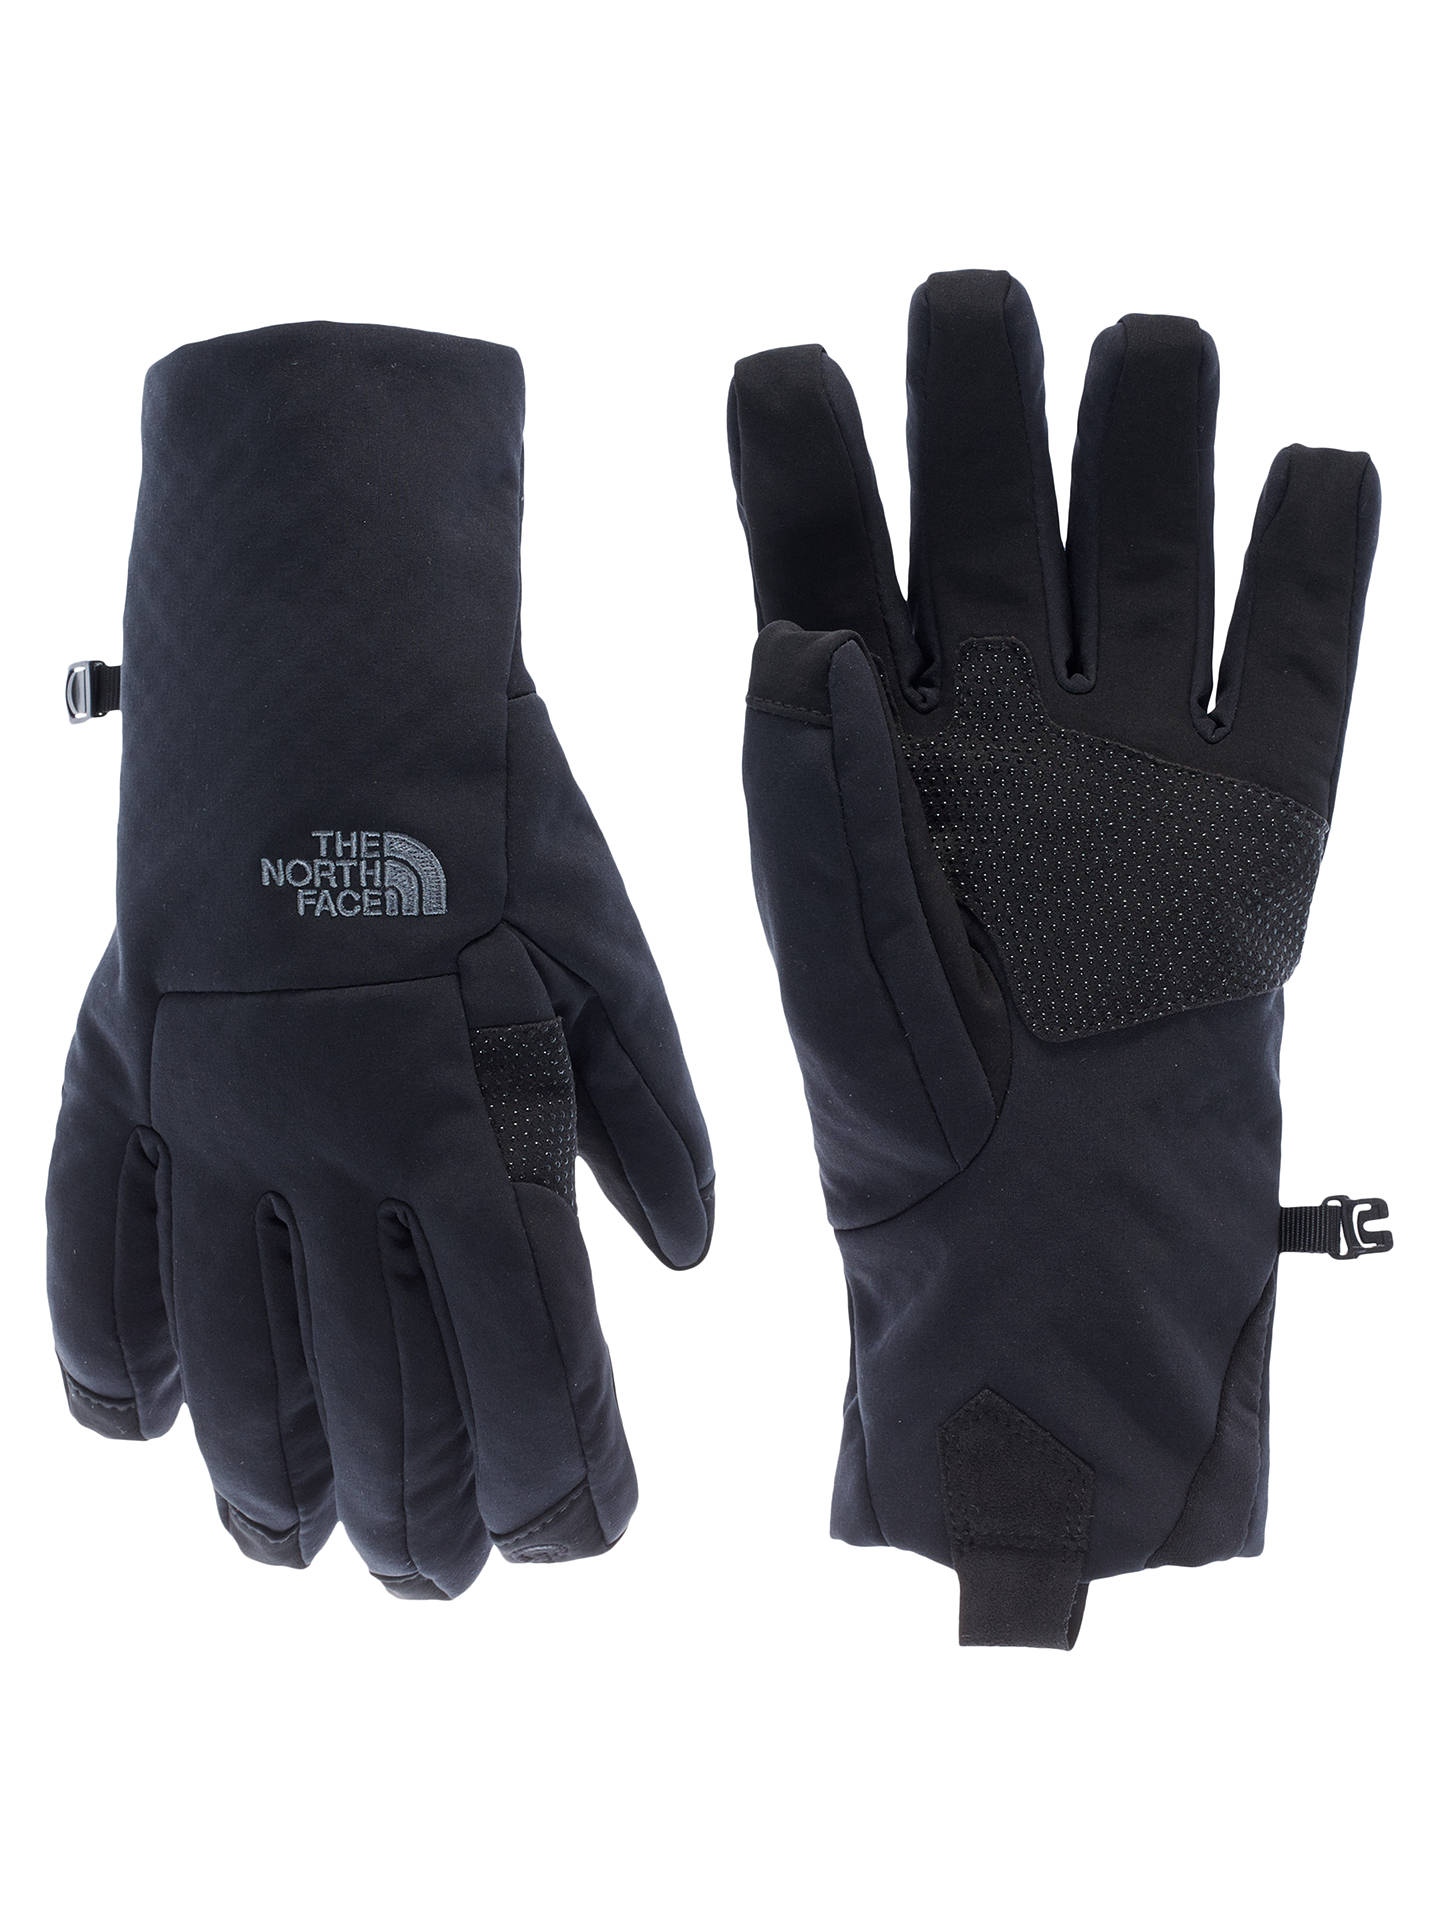 3dfe76da4 The North Face Women's Apex Etip Gloves, Black at John Lewis & Partners